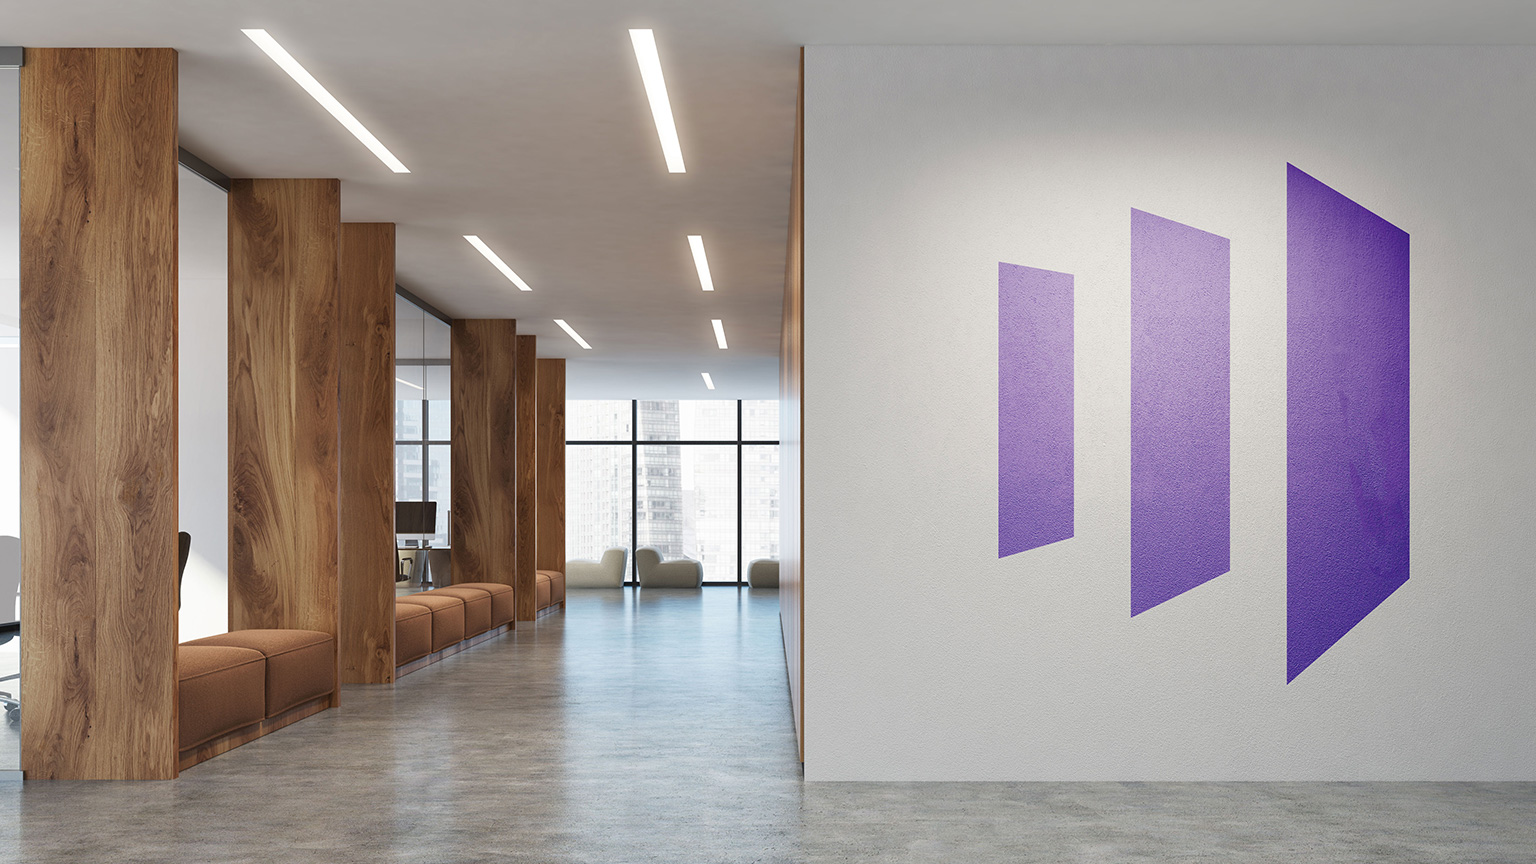 Engagement Factory further expands partner network with Marketo